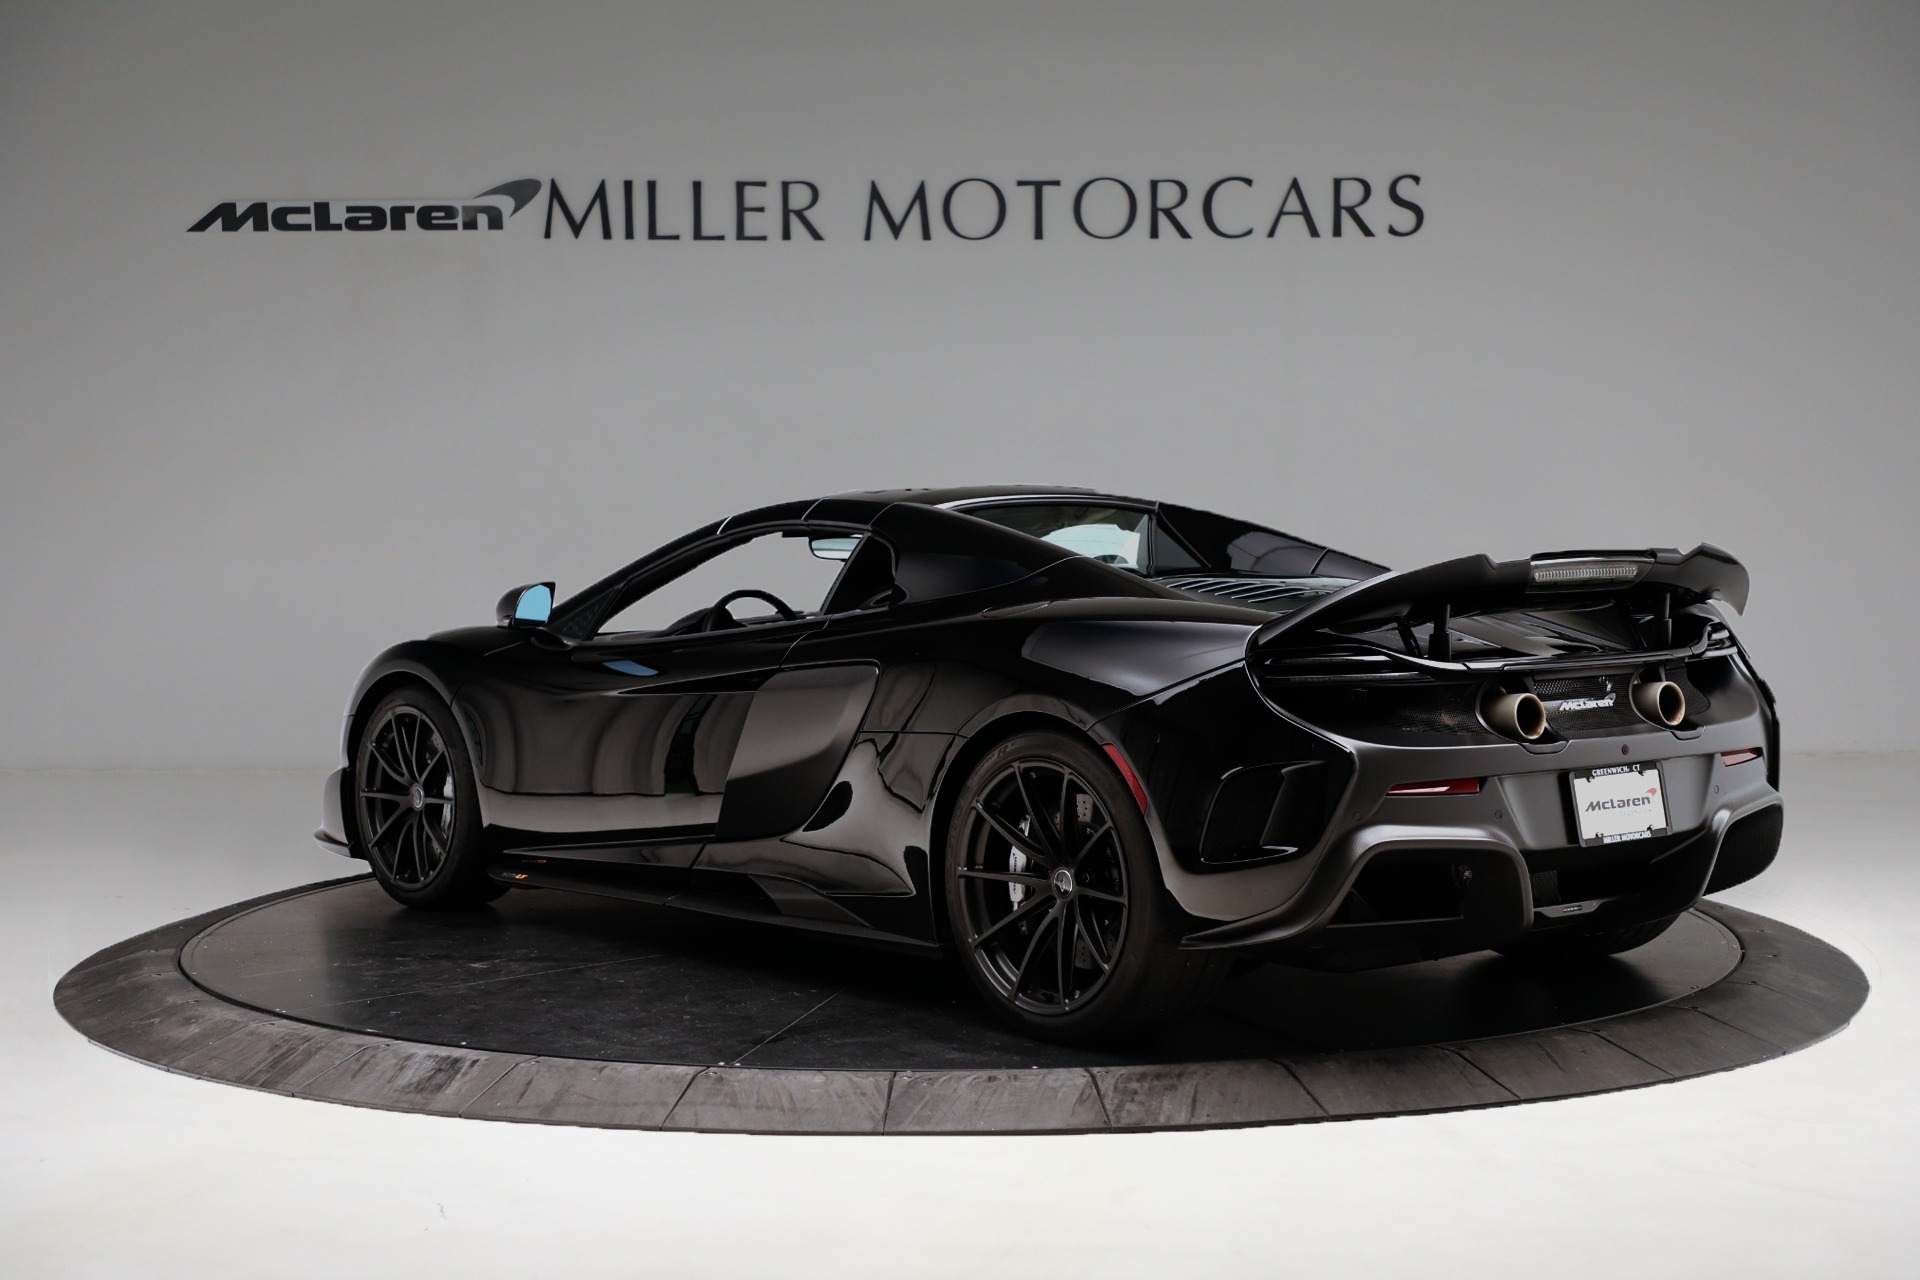 Used 2016 McLaren 675LT Spider For Sale In Westport, CT 3455_p15